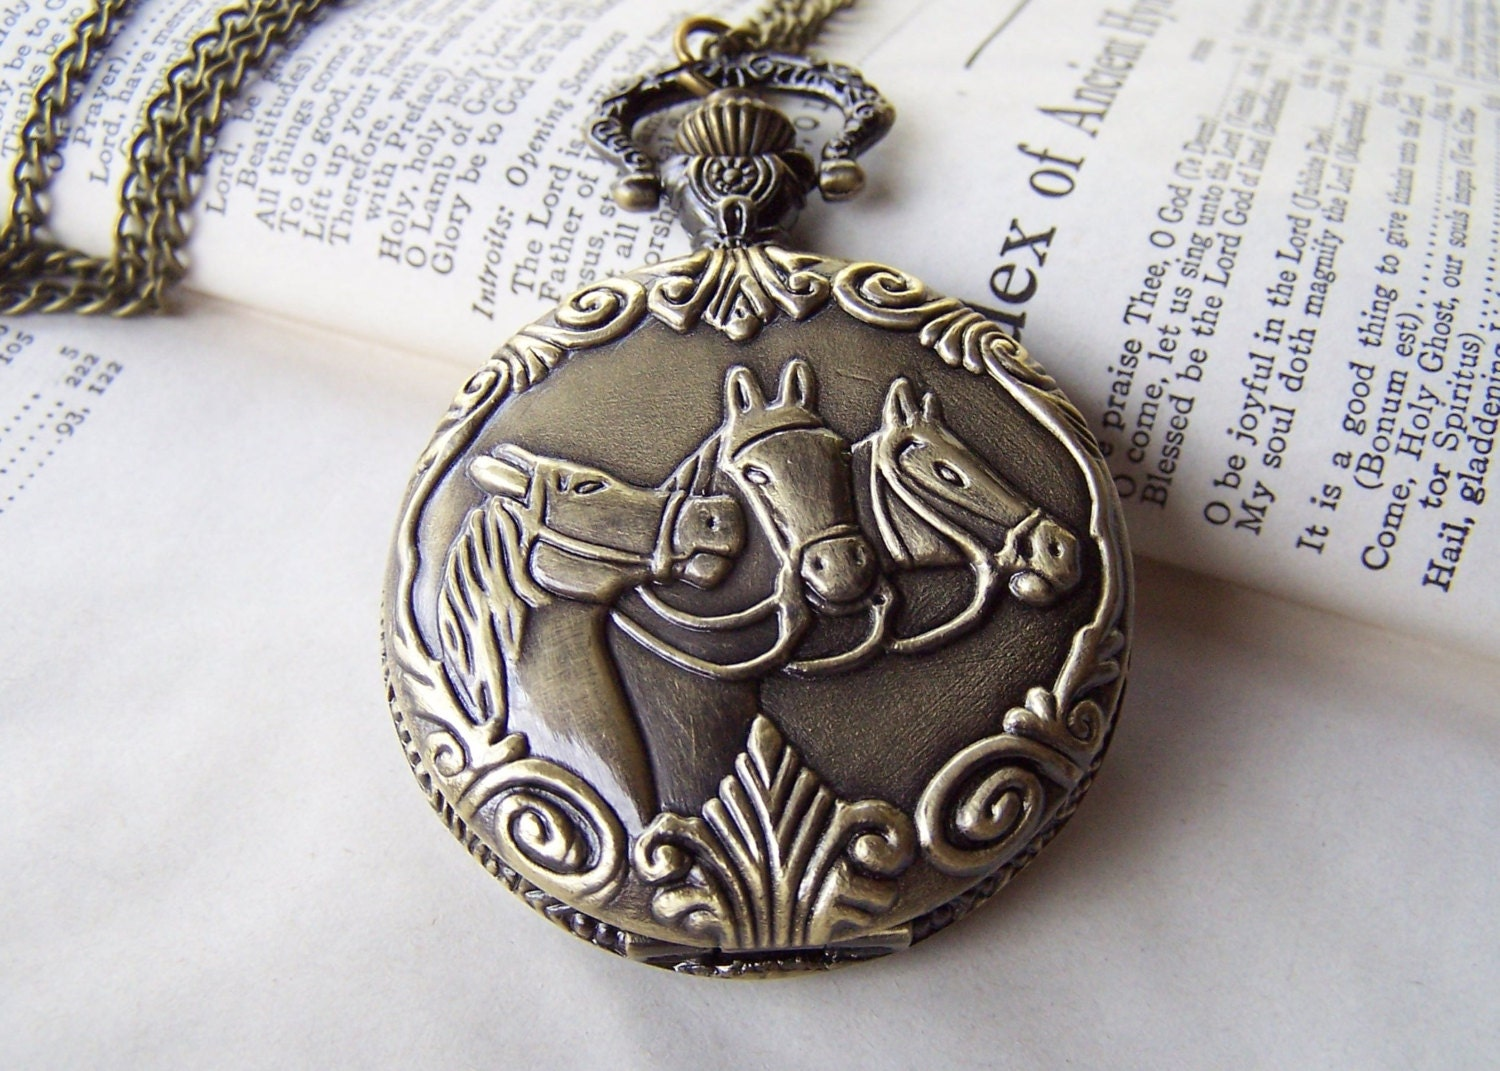 superb fob locket pin pendant antique enamel watch victorian landscape lockets